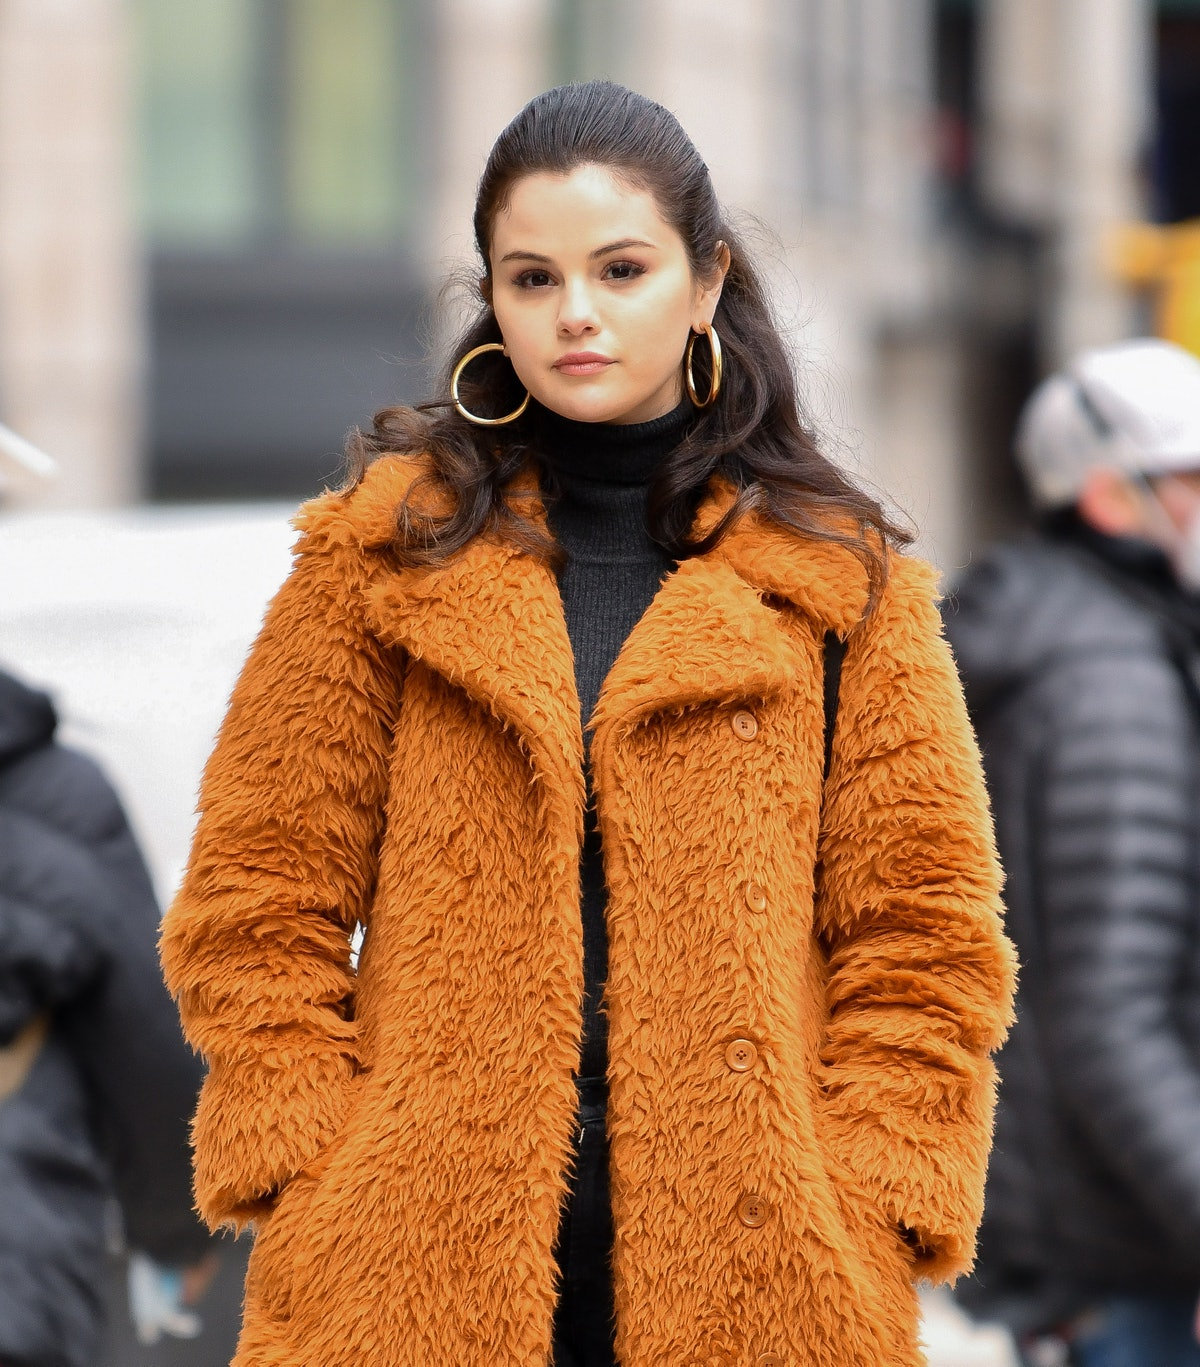 NEW YORK, NY - FEBRUARY 24:  Selena Gomez seen on the set of 'Only Murders in the Building' in Manhattan on February 24, 2021 in New York City.  (Photo by James Devaney/GC Images)